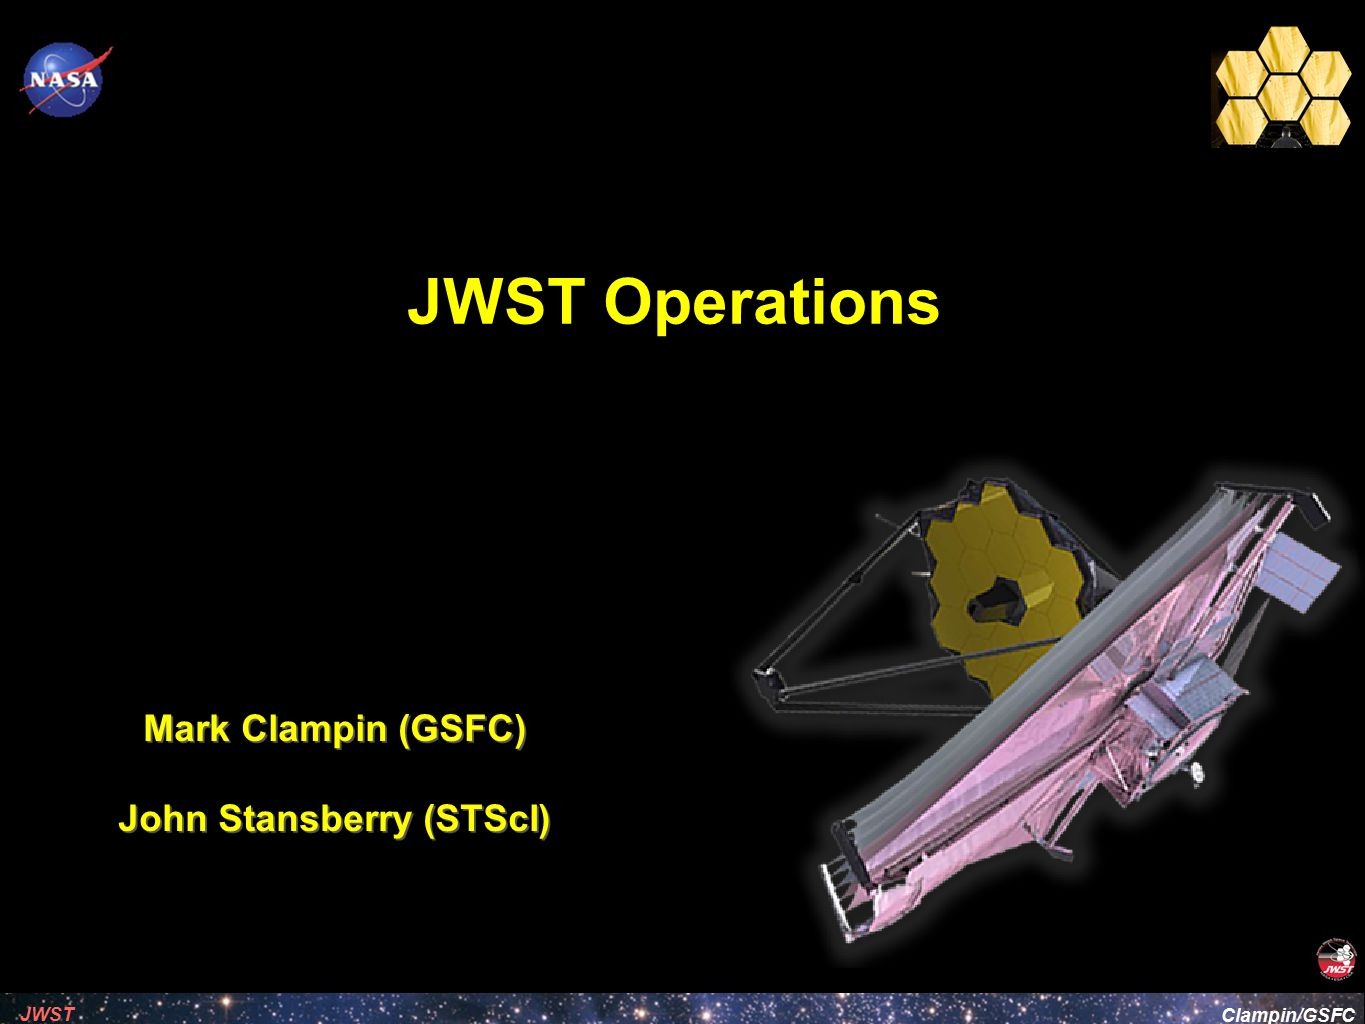 Clampin/GSFC JWST Exposure Time Calculator No dedicated exoplanet ETC is in the works ➡ Normal SNR predictions on host star can be used to estimate detection limits for transit signatures ➡ There is currently no additional knowledge available to enable a more precise ETC implementation